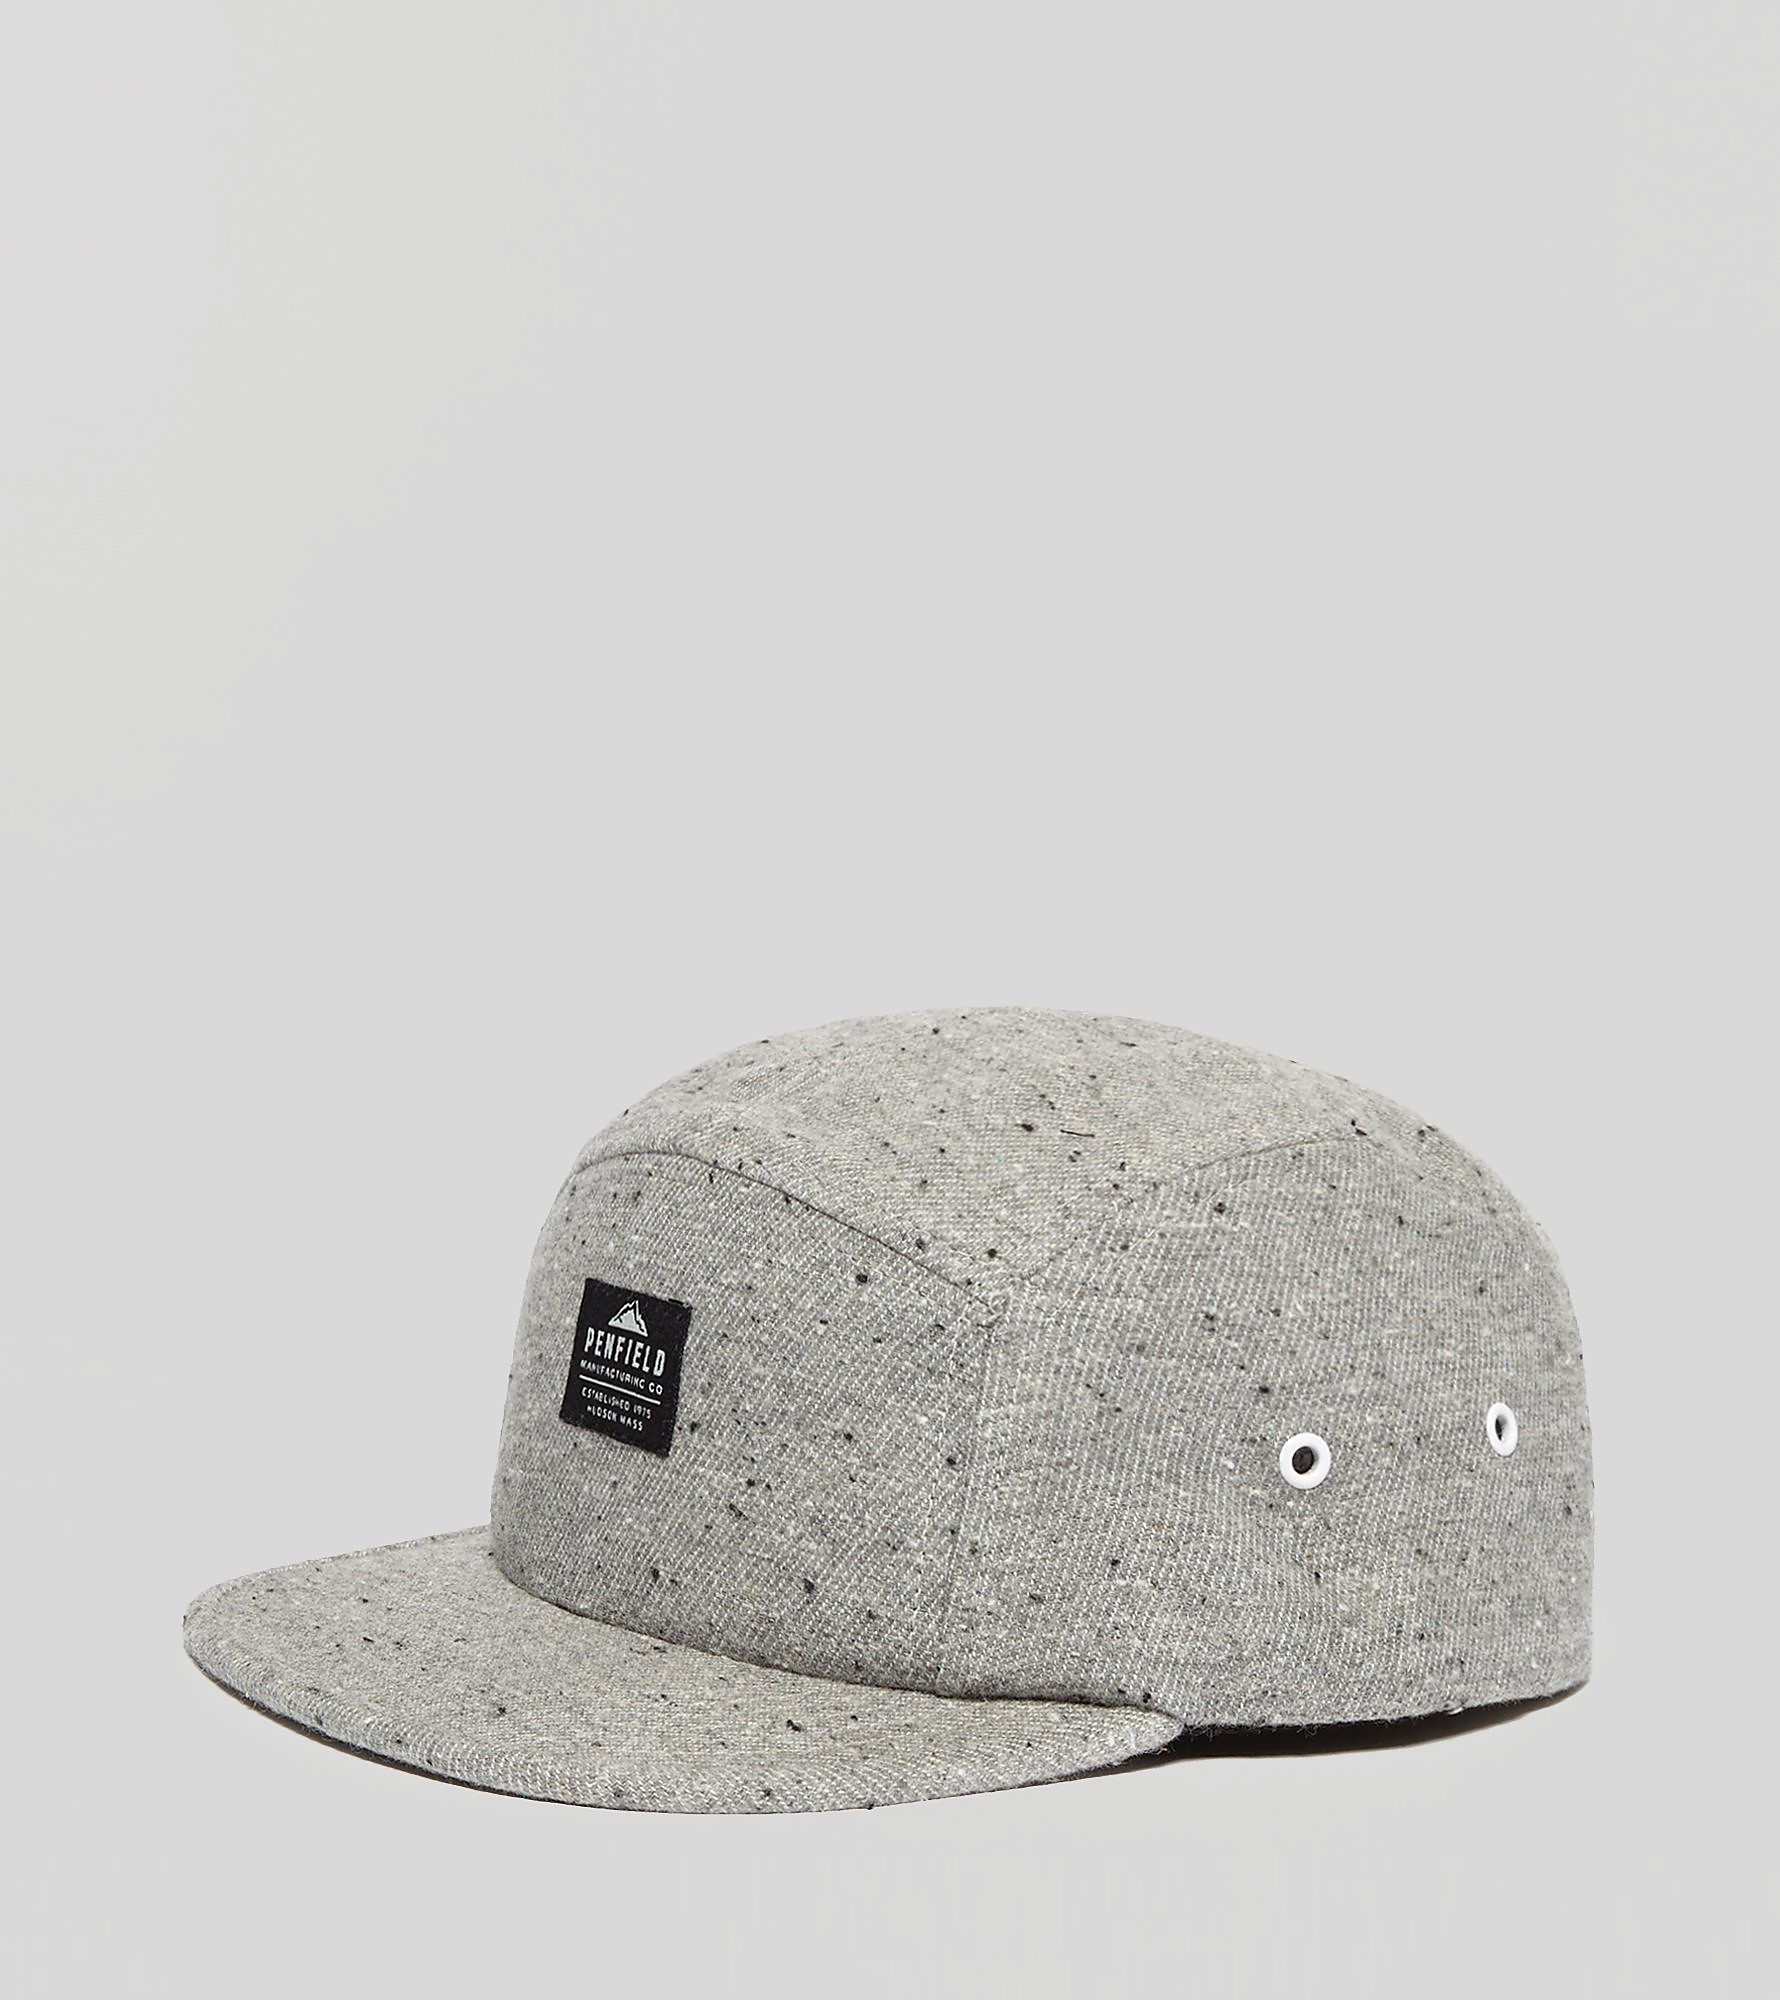 Penfield Casper 5 Panel Cap